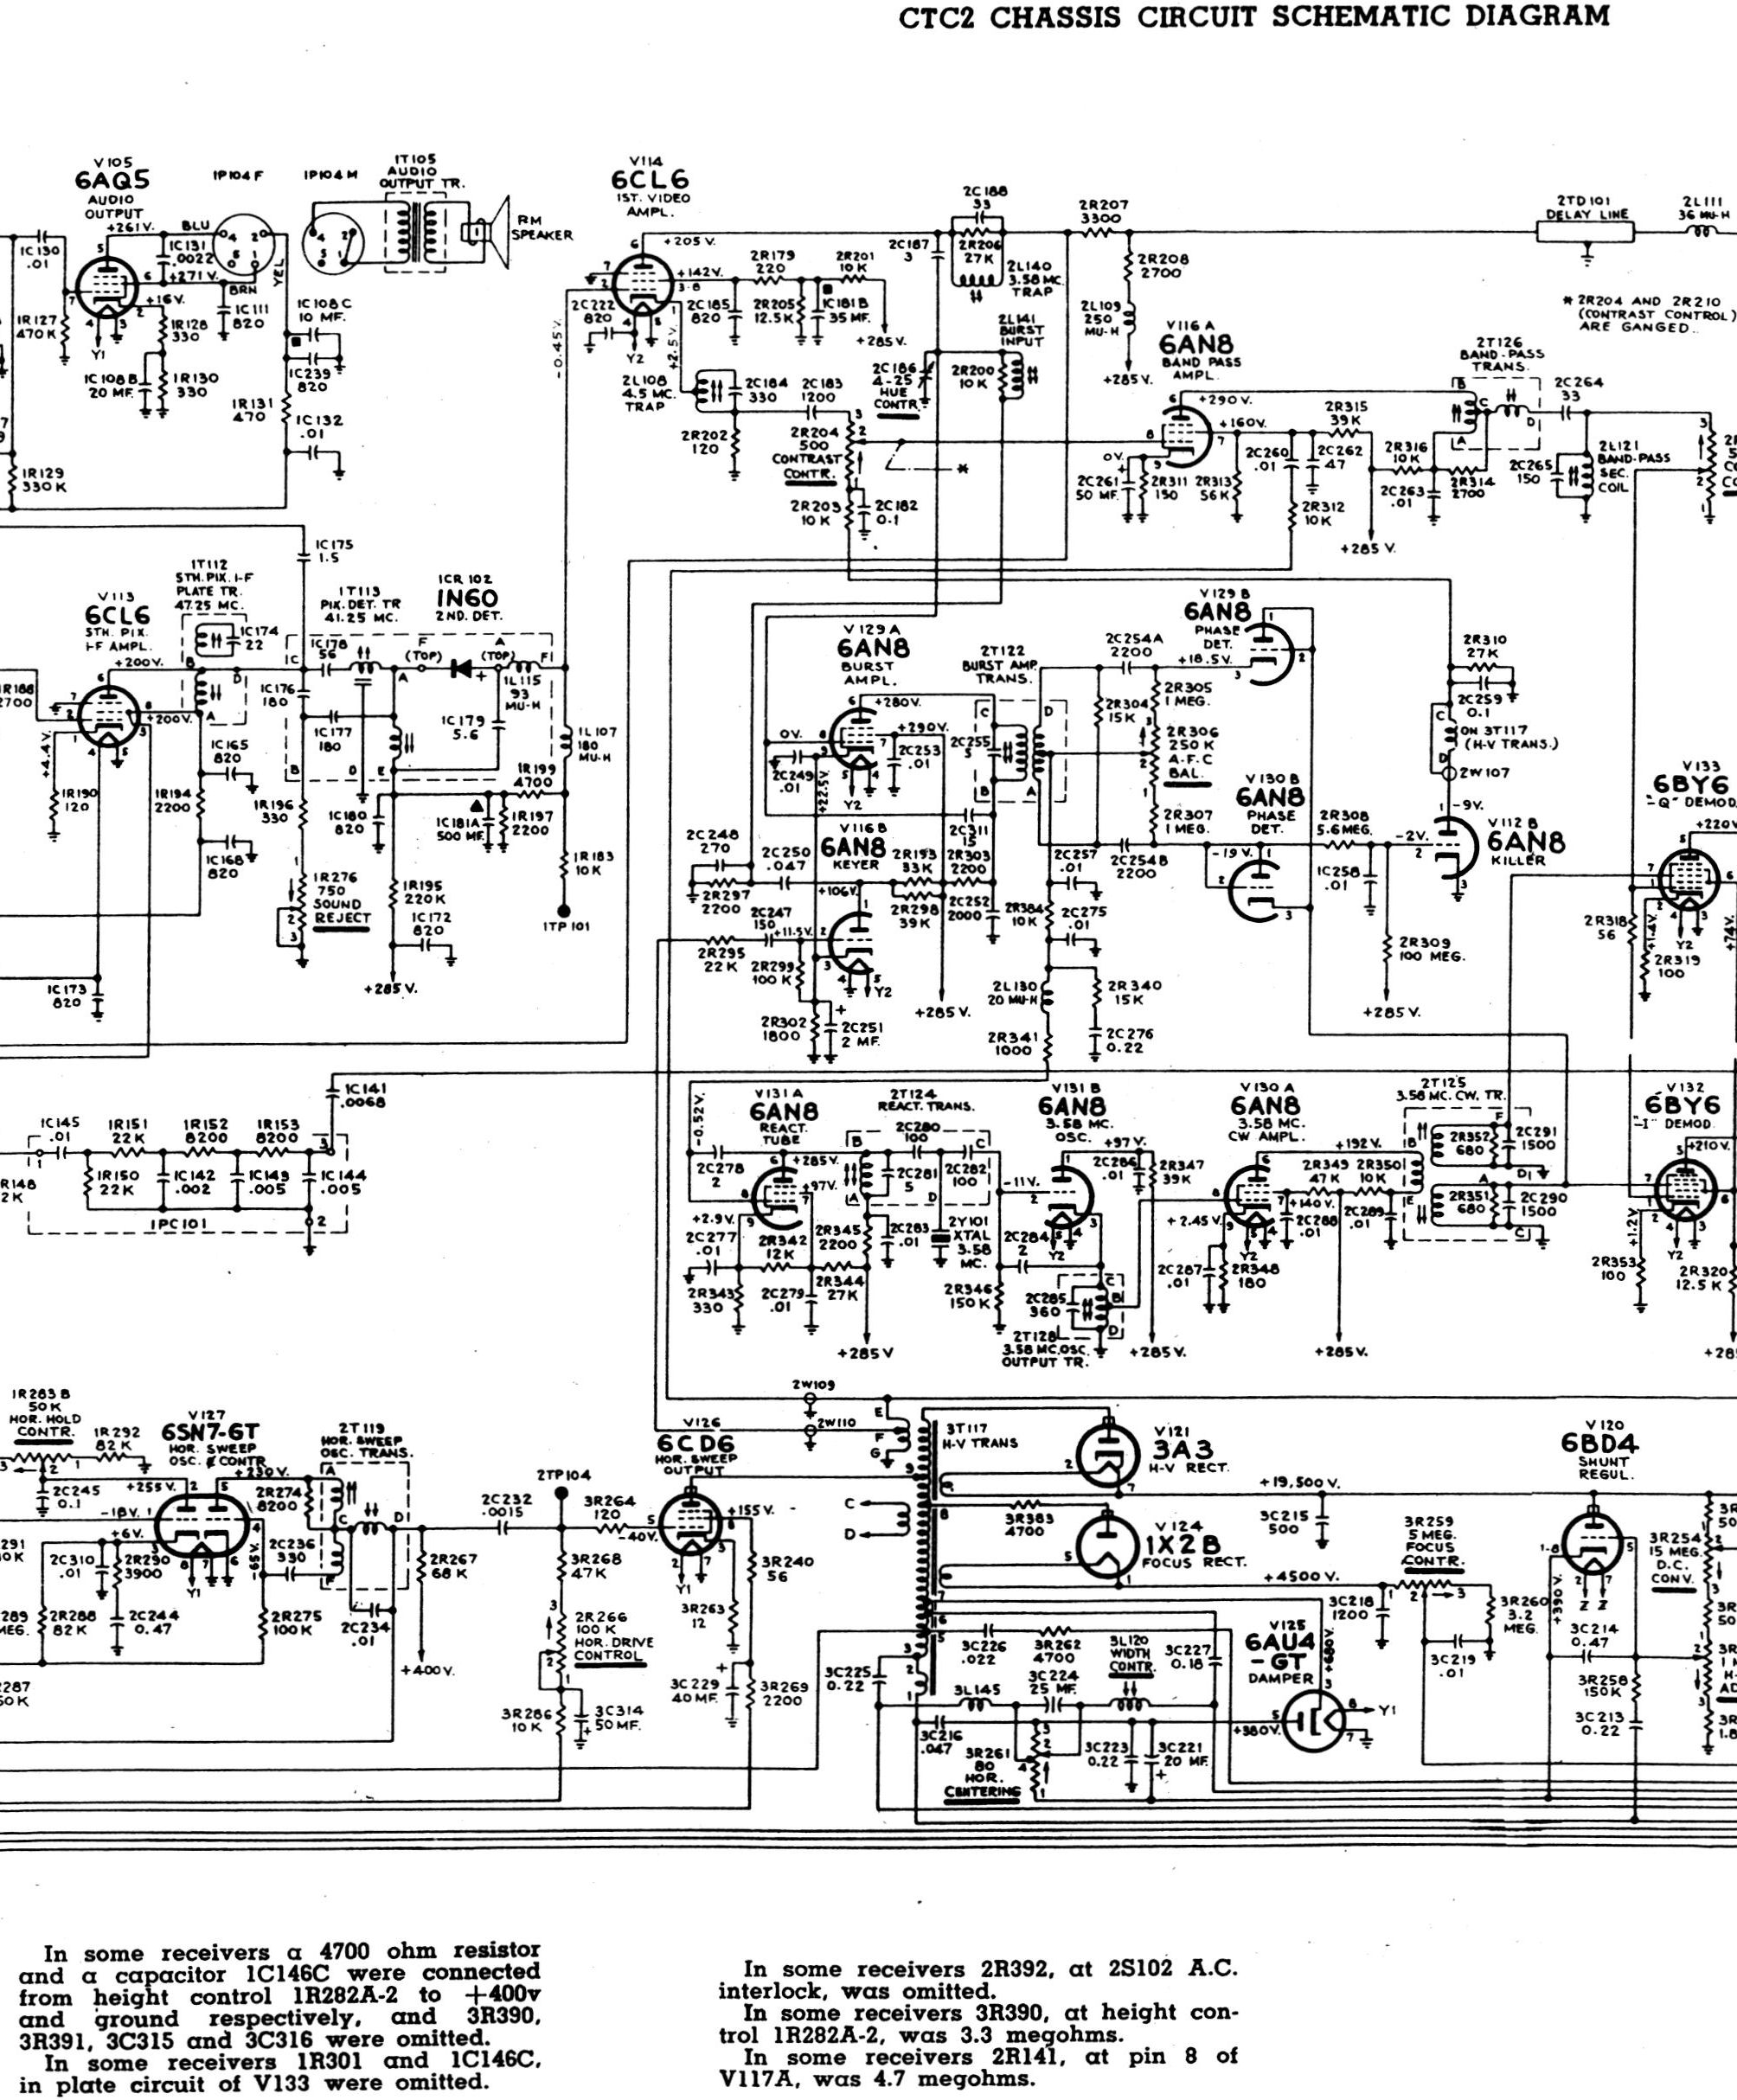 Rca Ct 100 Chassis Intrigue Tv Video Vintage Old Engineering Schematics I Find It A Much Better Troubleshooting Tool Than The Others Because Engineers Annotated This Schematic With Bold Lines To Indicate Primary